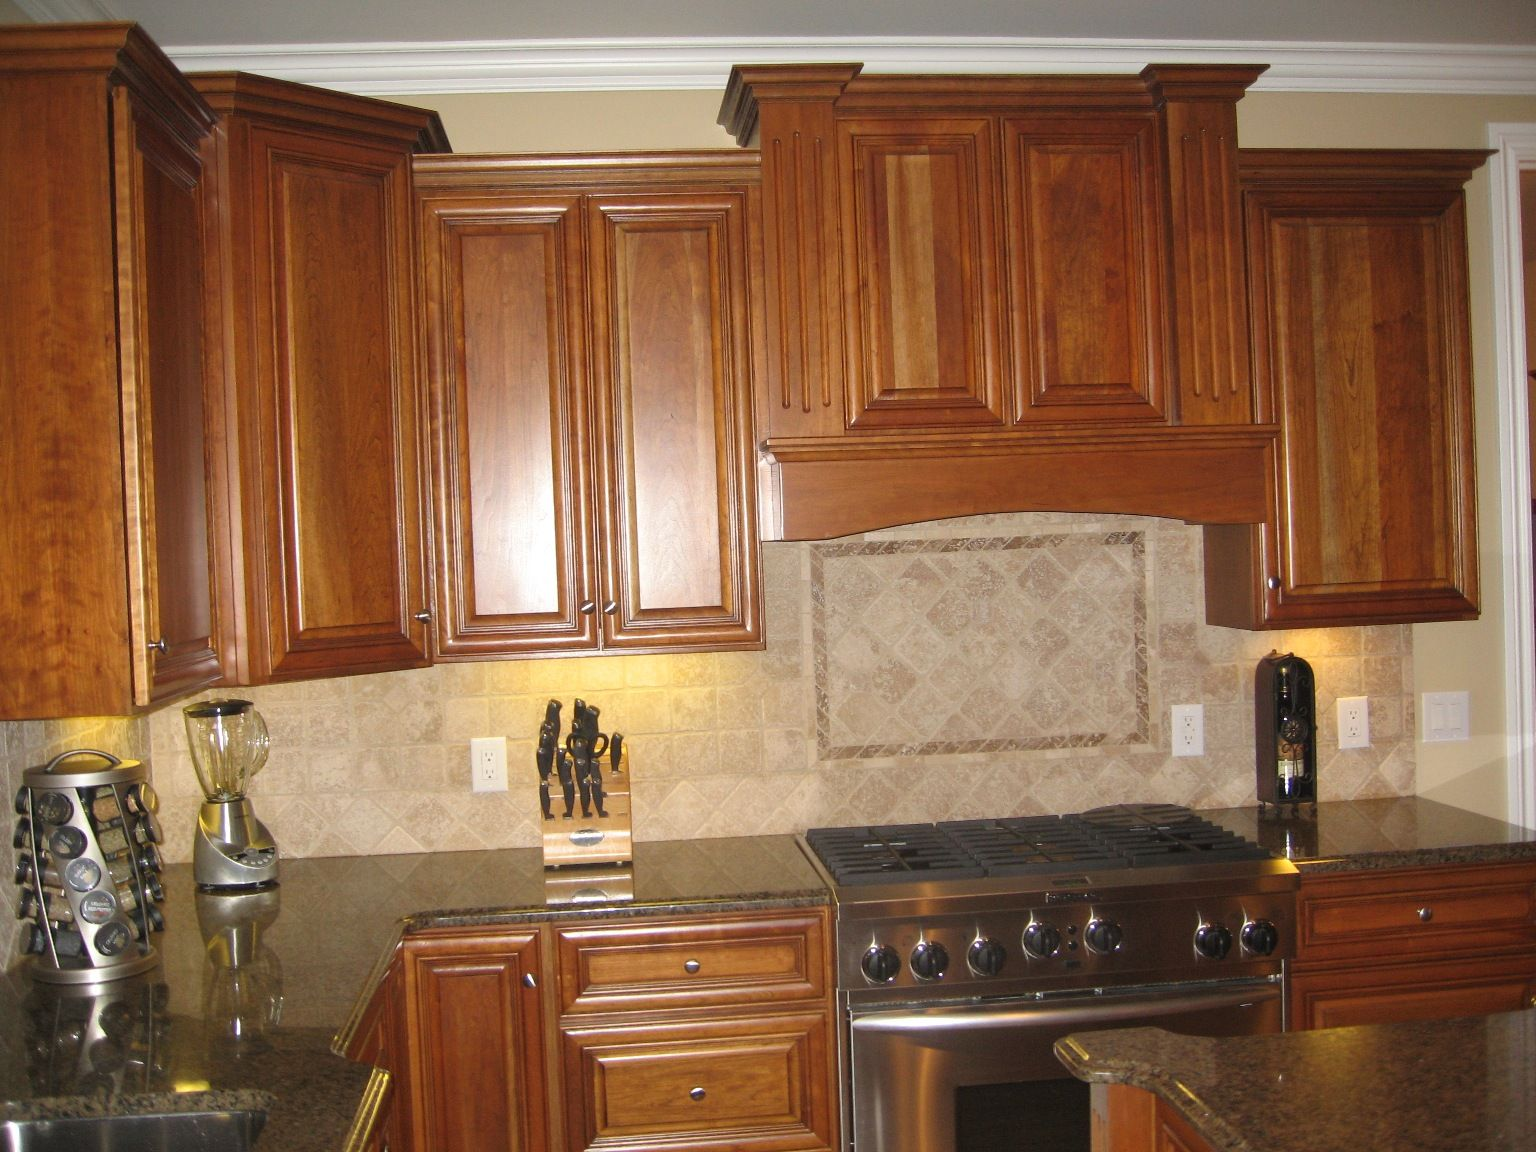 Kitchen island with quartz top - Kitchen Quartz Countertops With Oak Cabinets Quartz Countertops For Cherry Cabinets Cabinets And Black Countertops Quartz Tops With Cherry Cabinet Island